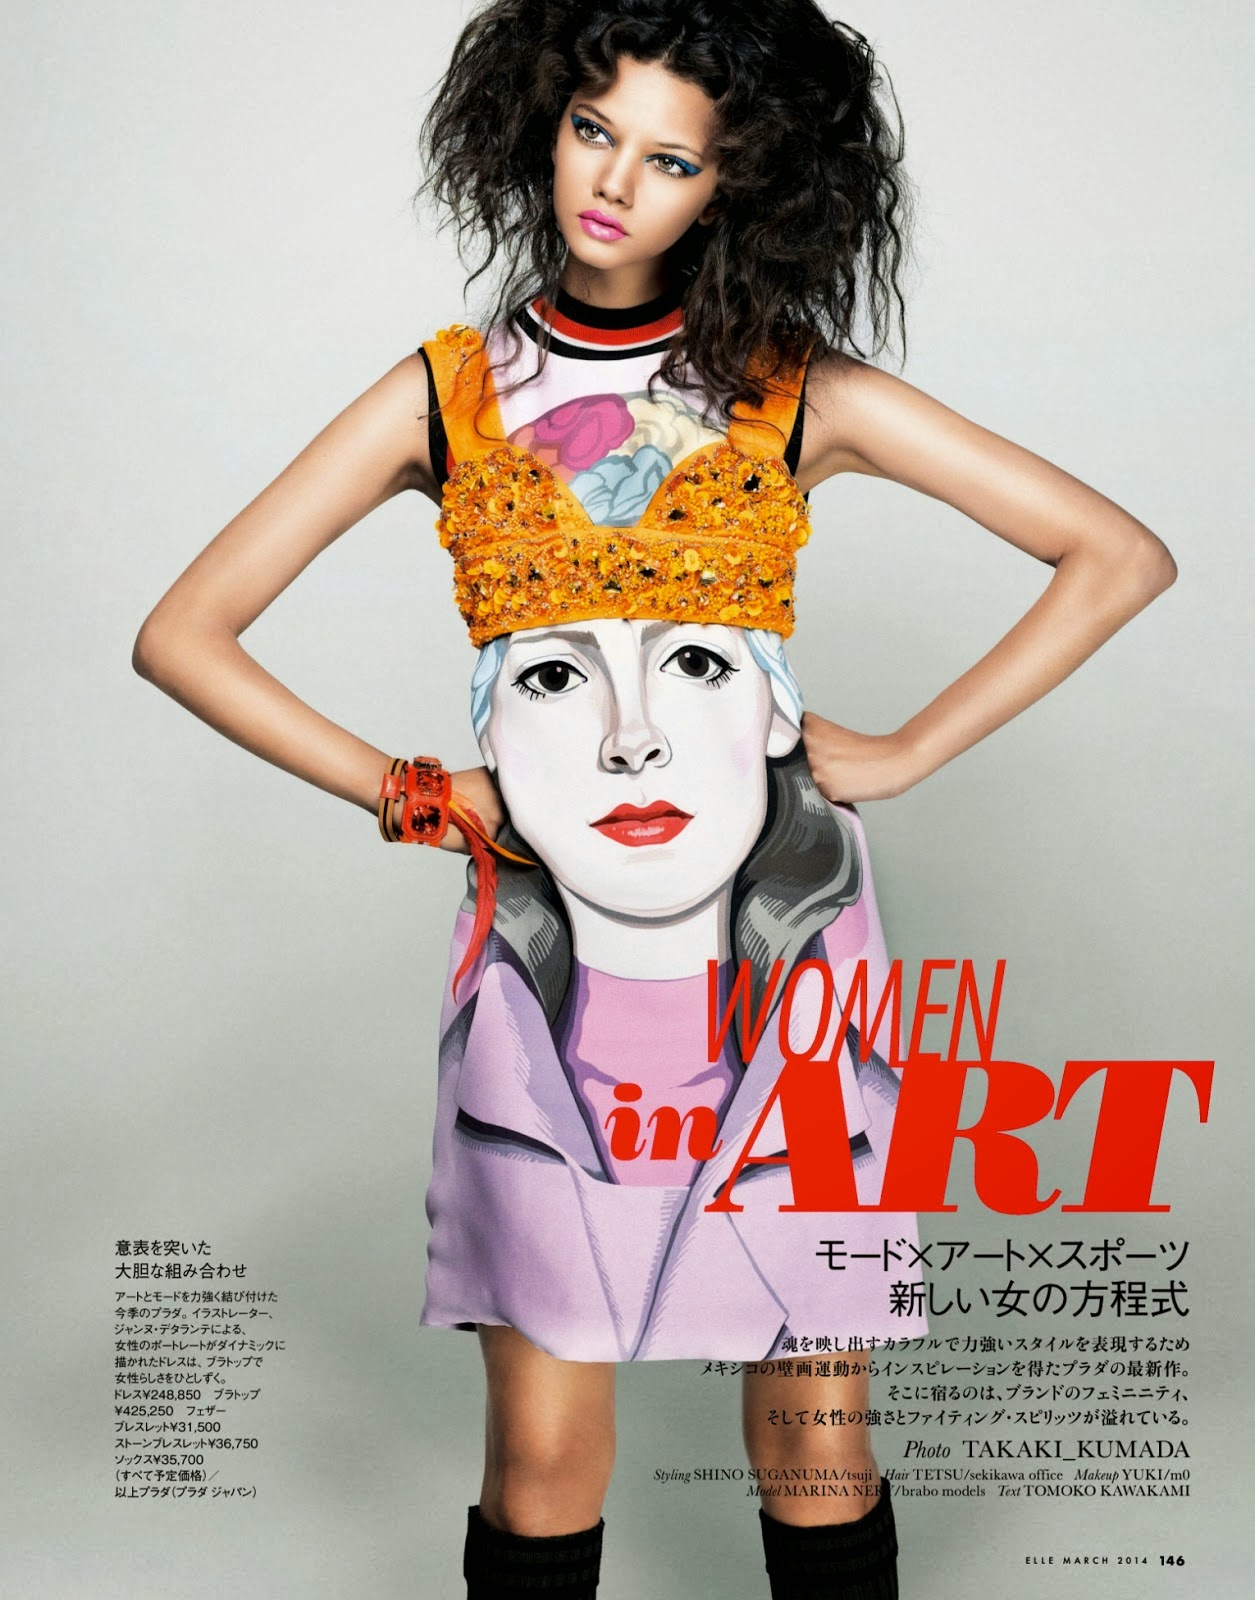 Marina Nery HQ Pictures Elle Japan Magazine Photoshoot March 2014 By Takaki Kumada